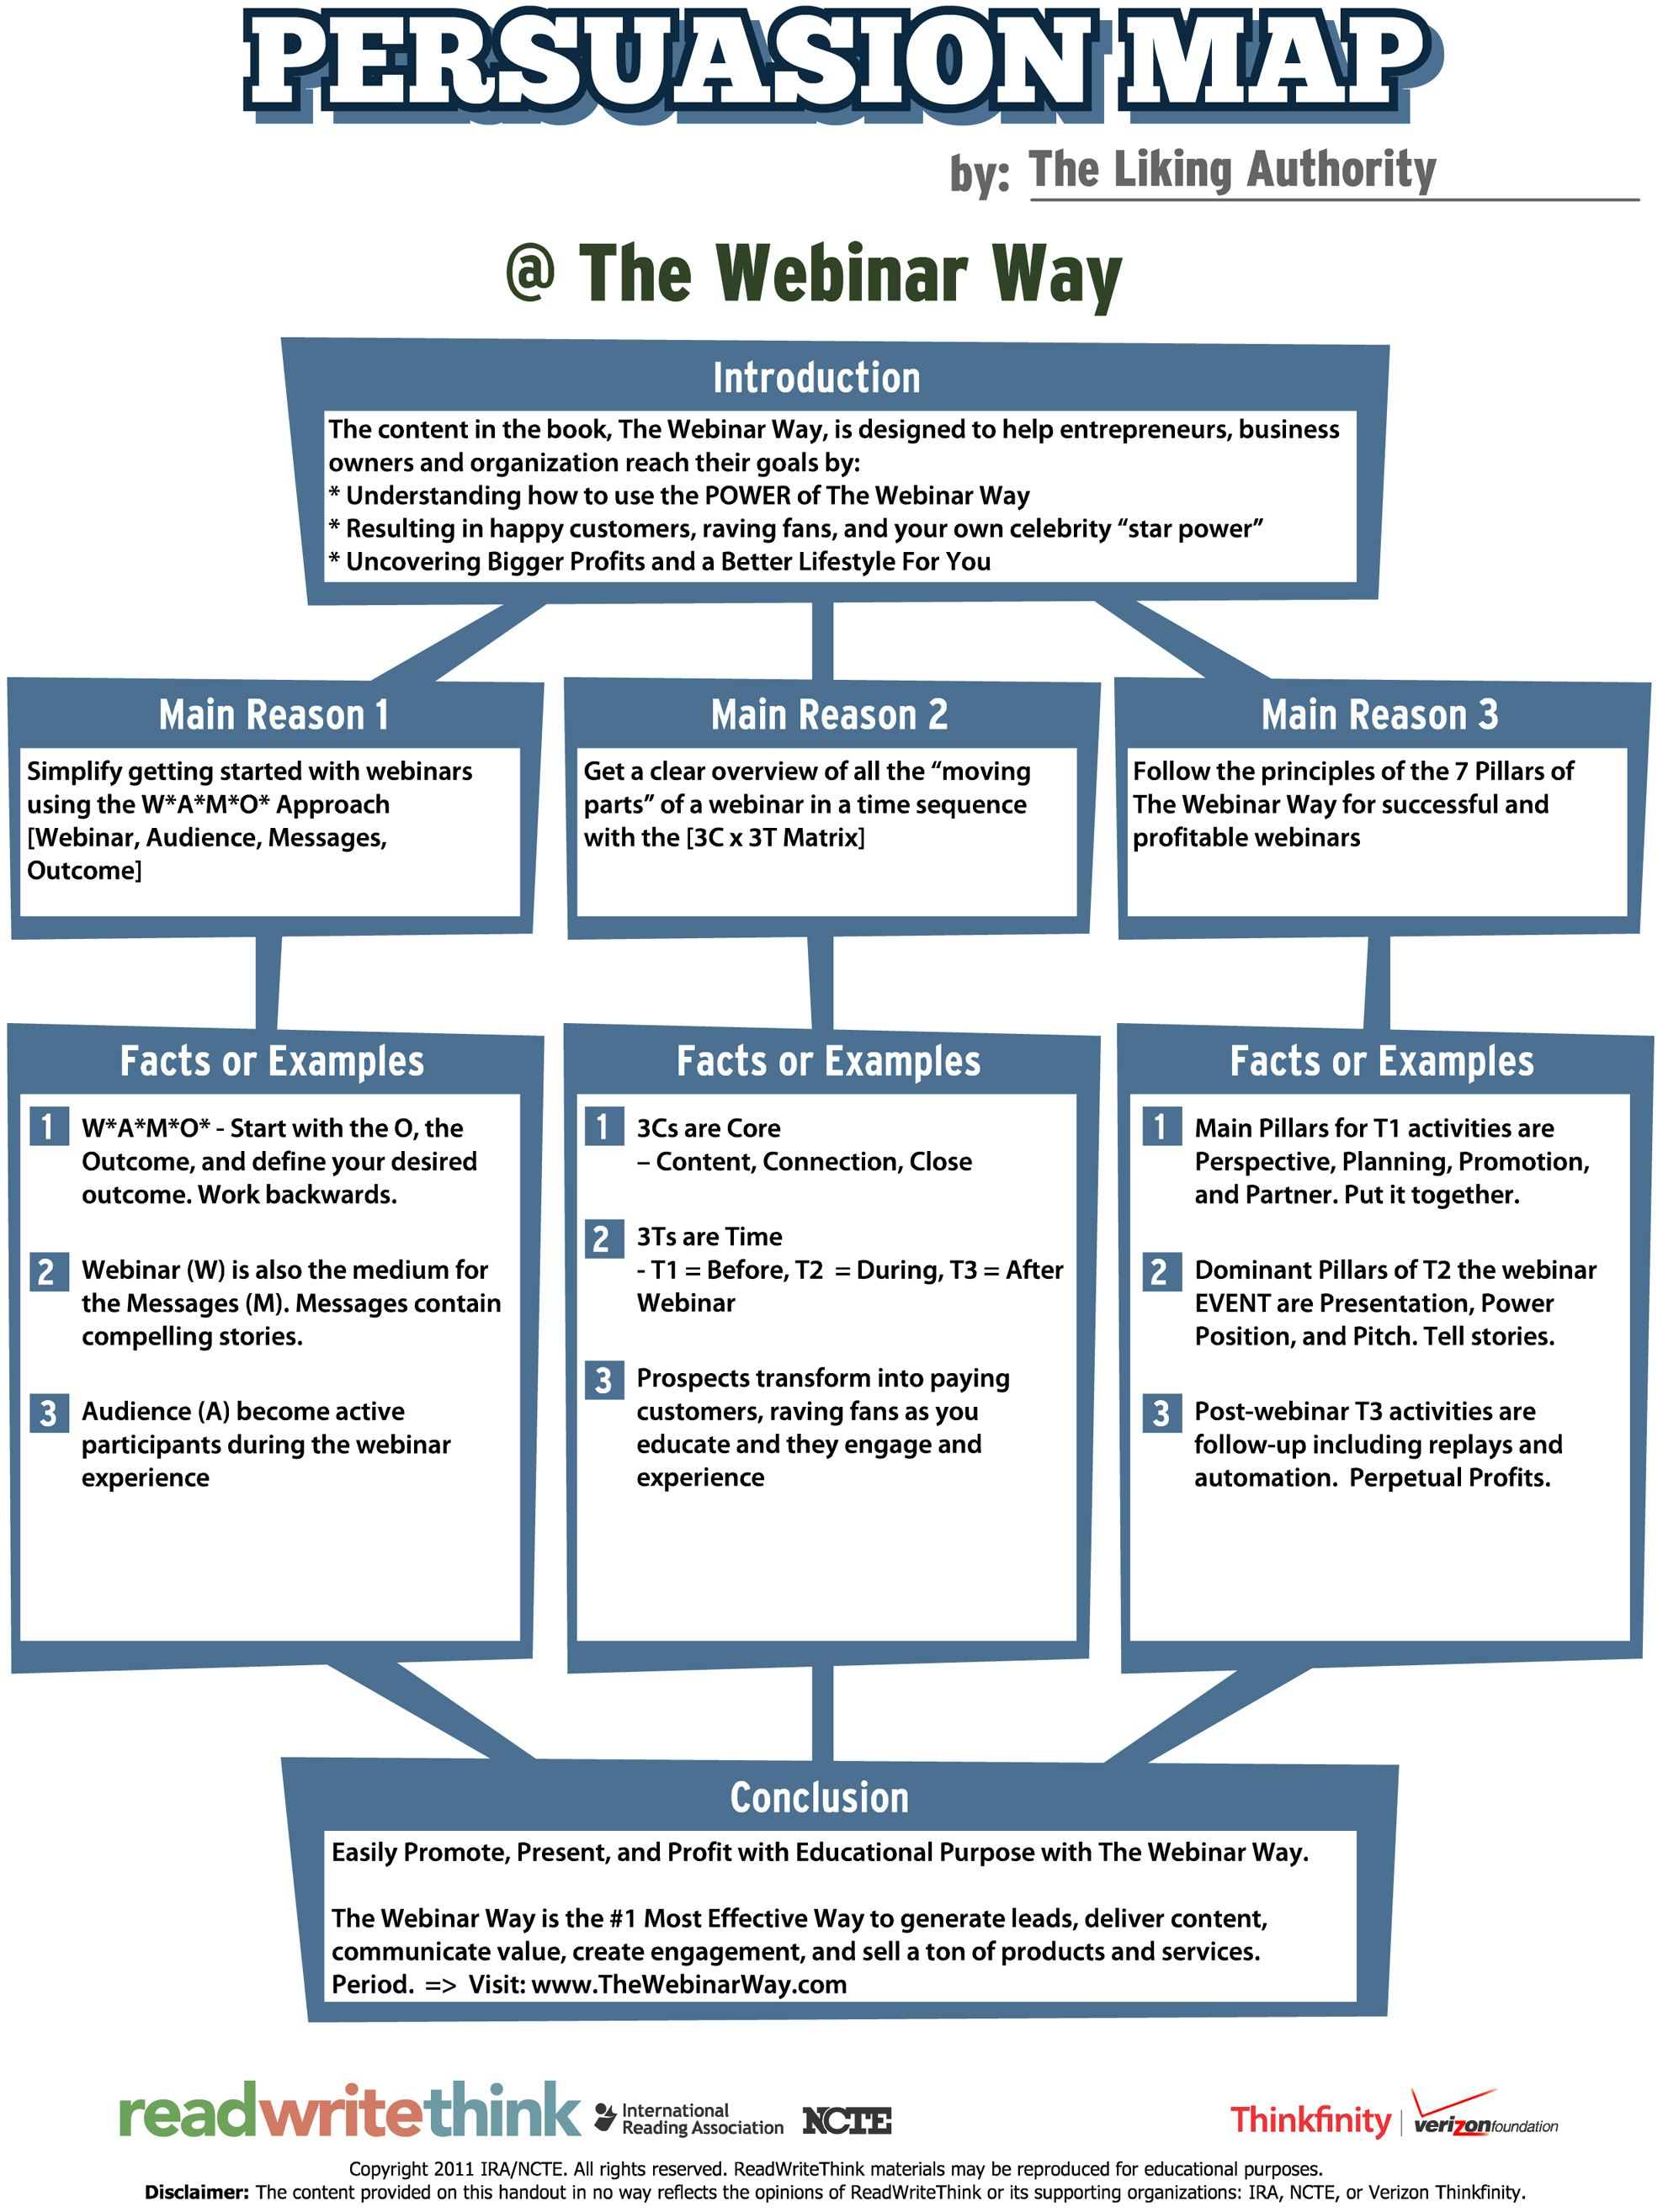 Persuasion Map Through Webinars Via Thewebinarway